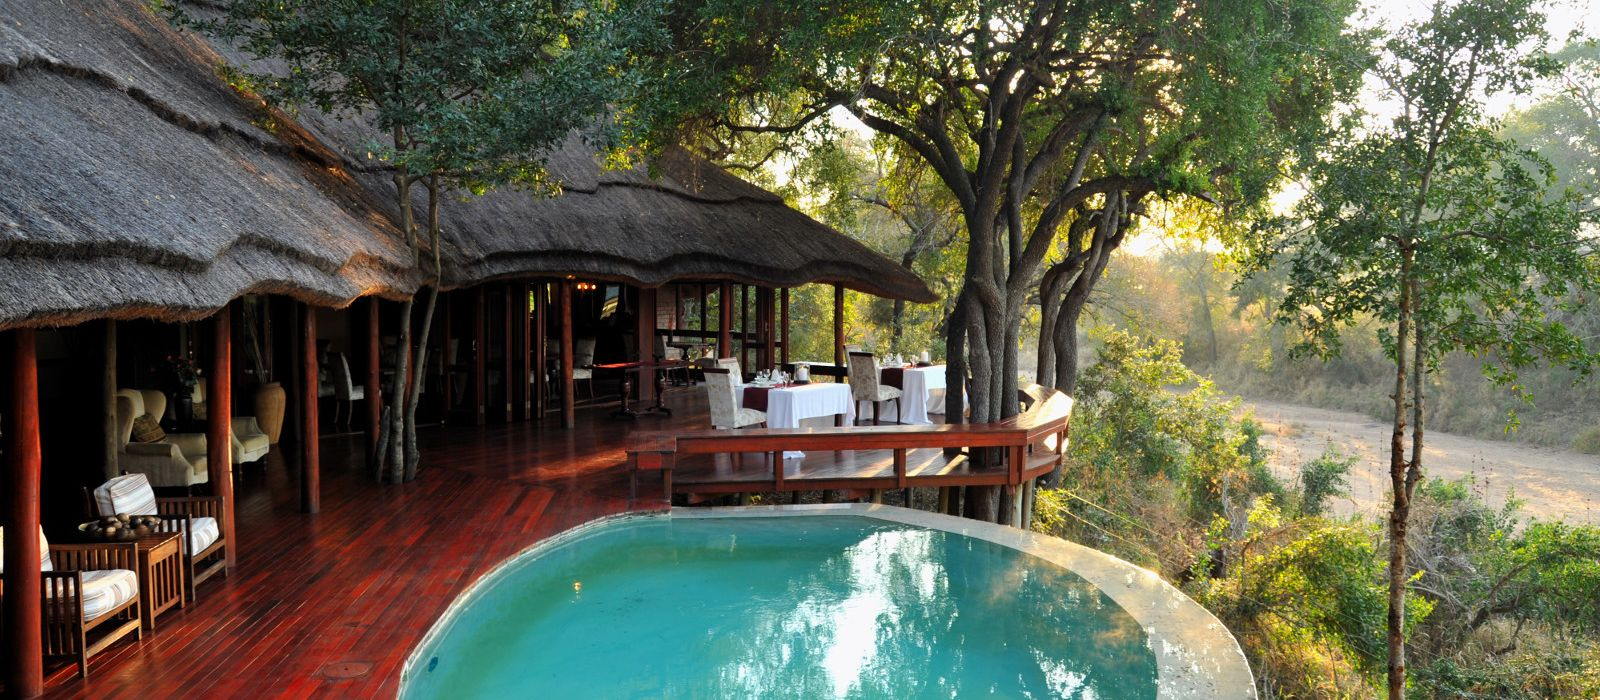 Hotel Imbali Safari Lodge Südafrika